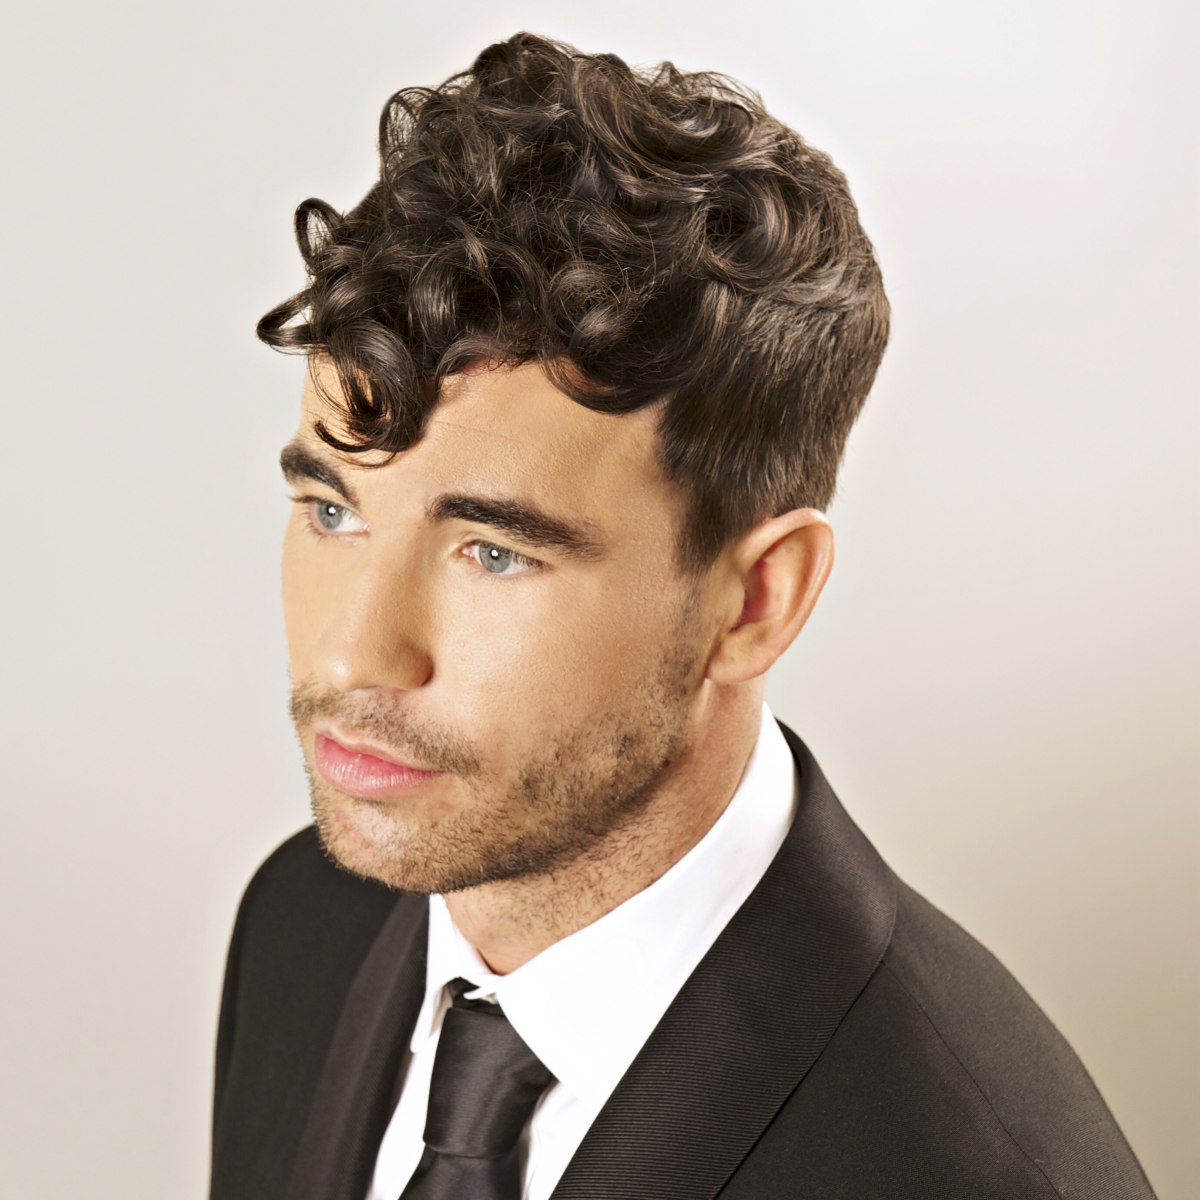 Vintage Inspired Mens Hairstyle With A Tuft Of Curls